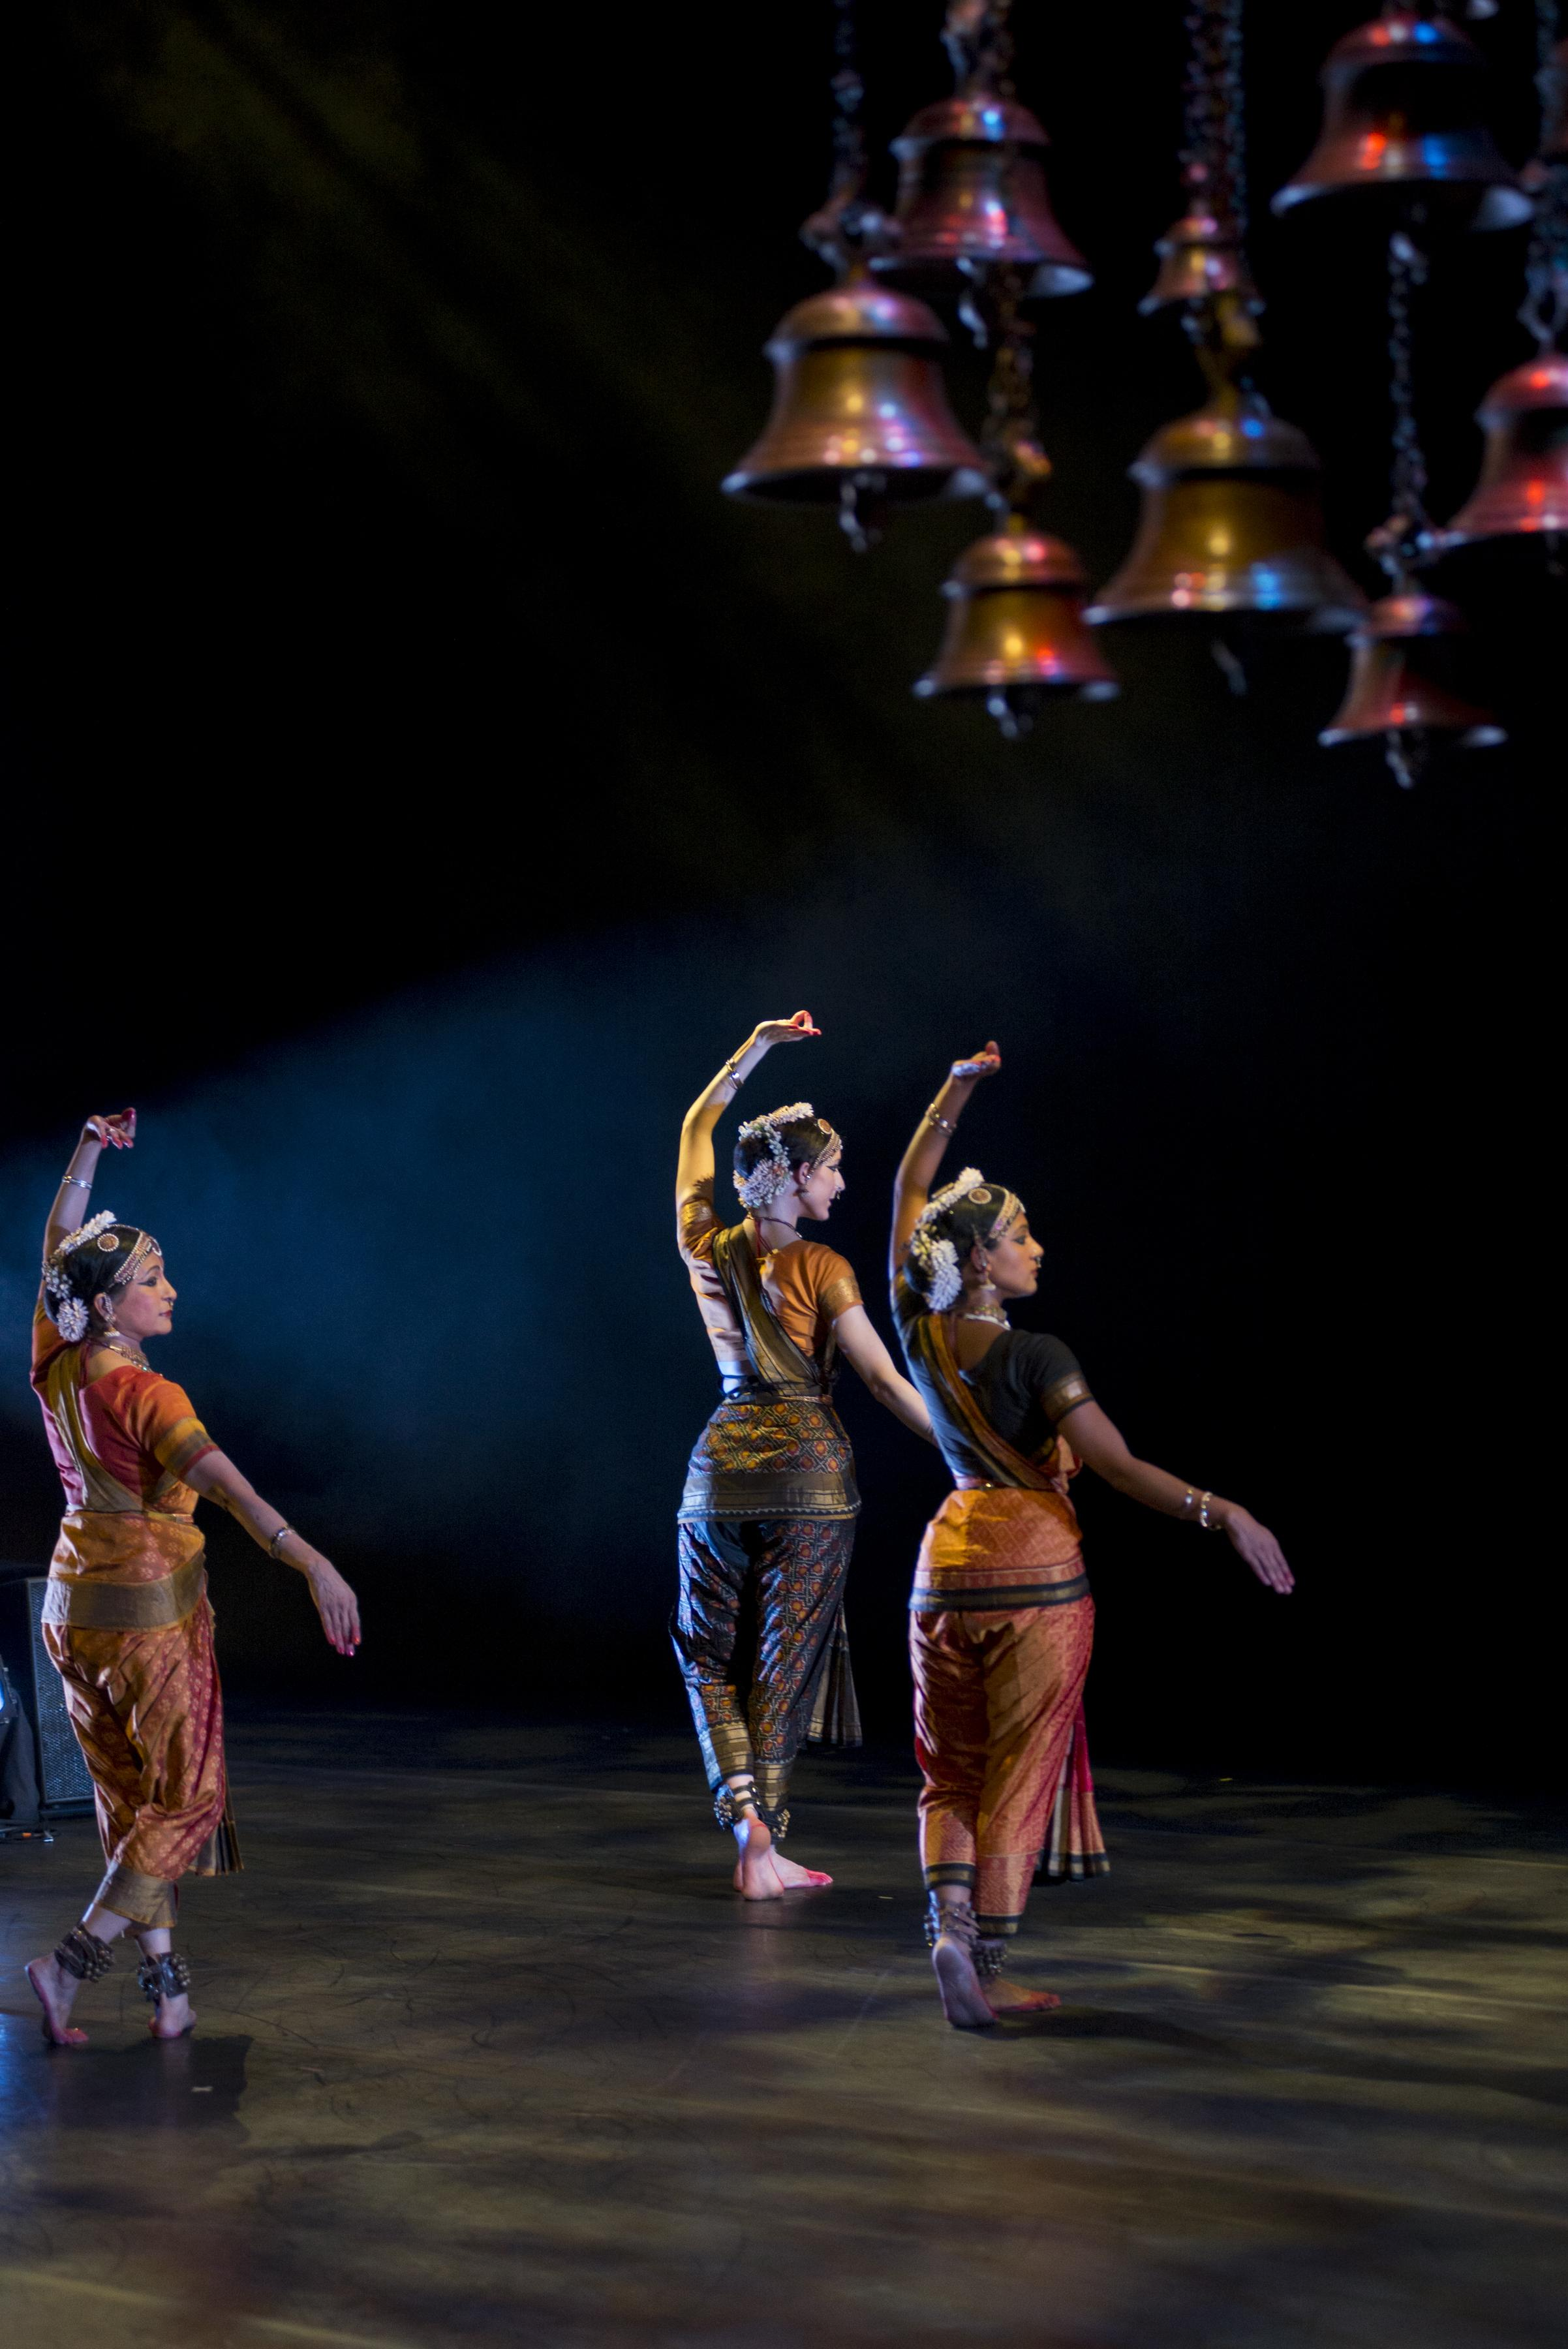 Three women wearing Indian saris, jewelry, and head ornaments dance in unison on a bare stage beneath hanging brass bells.